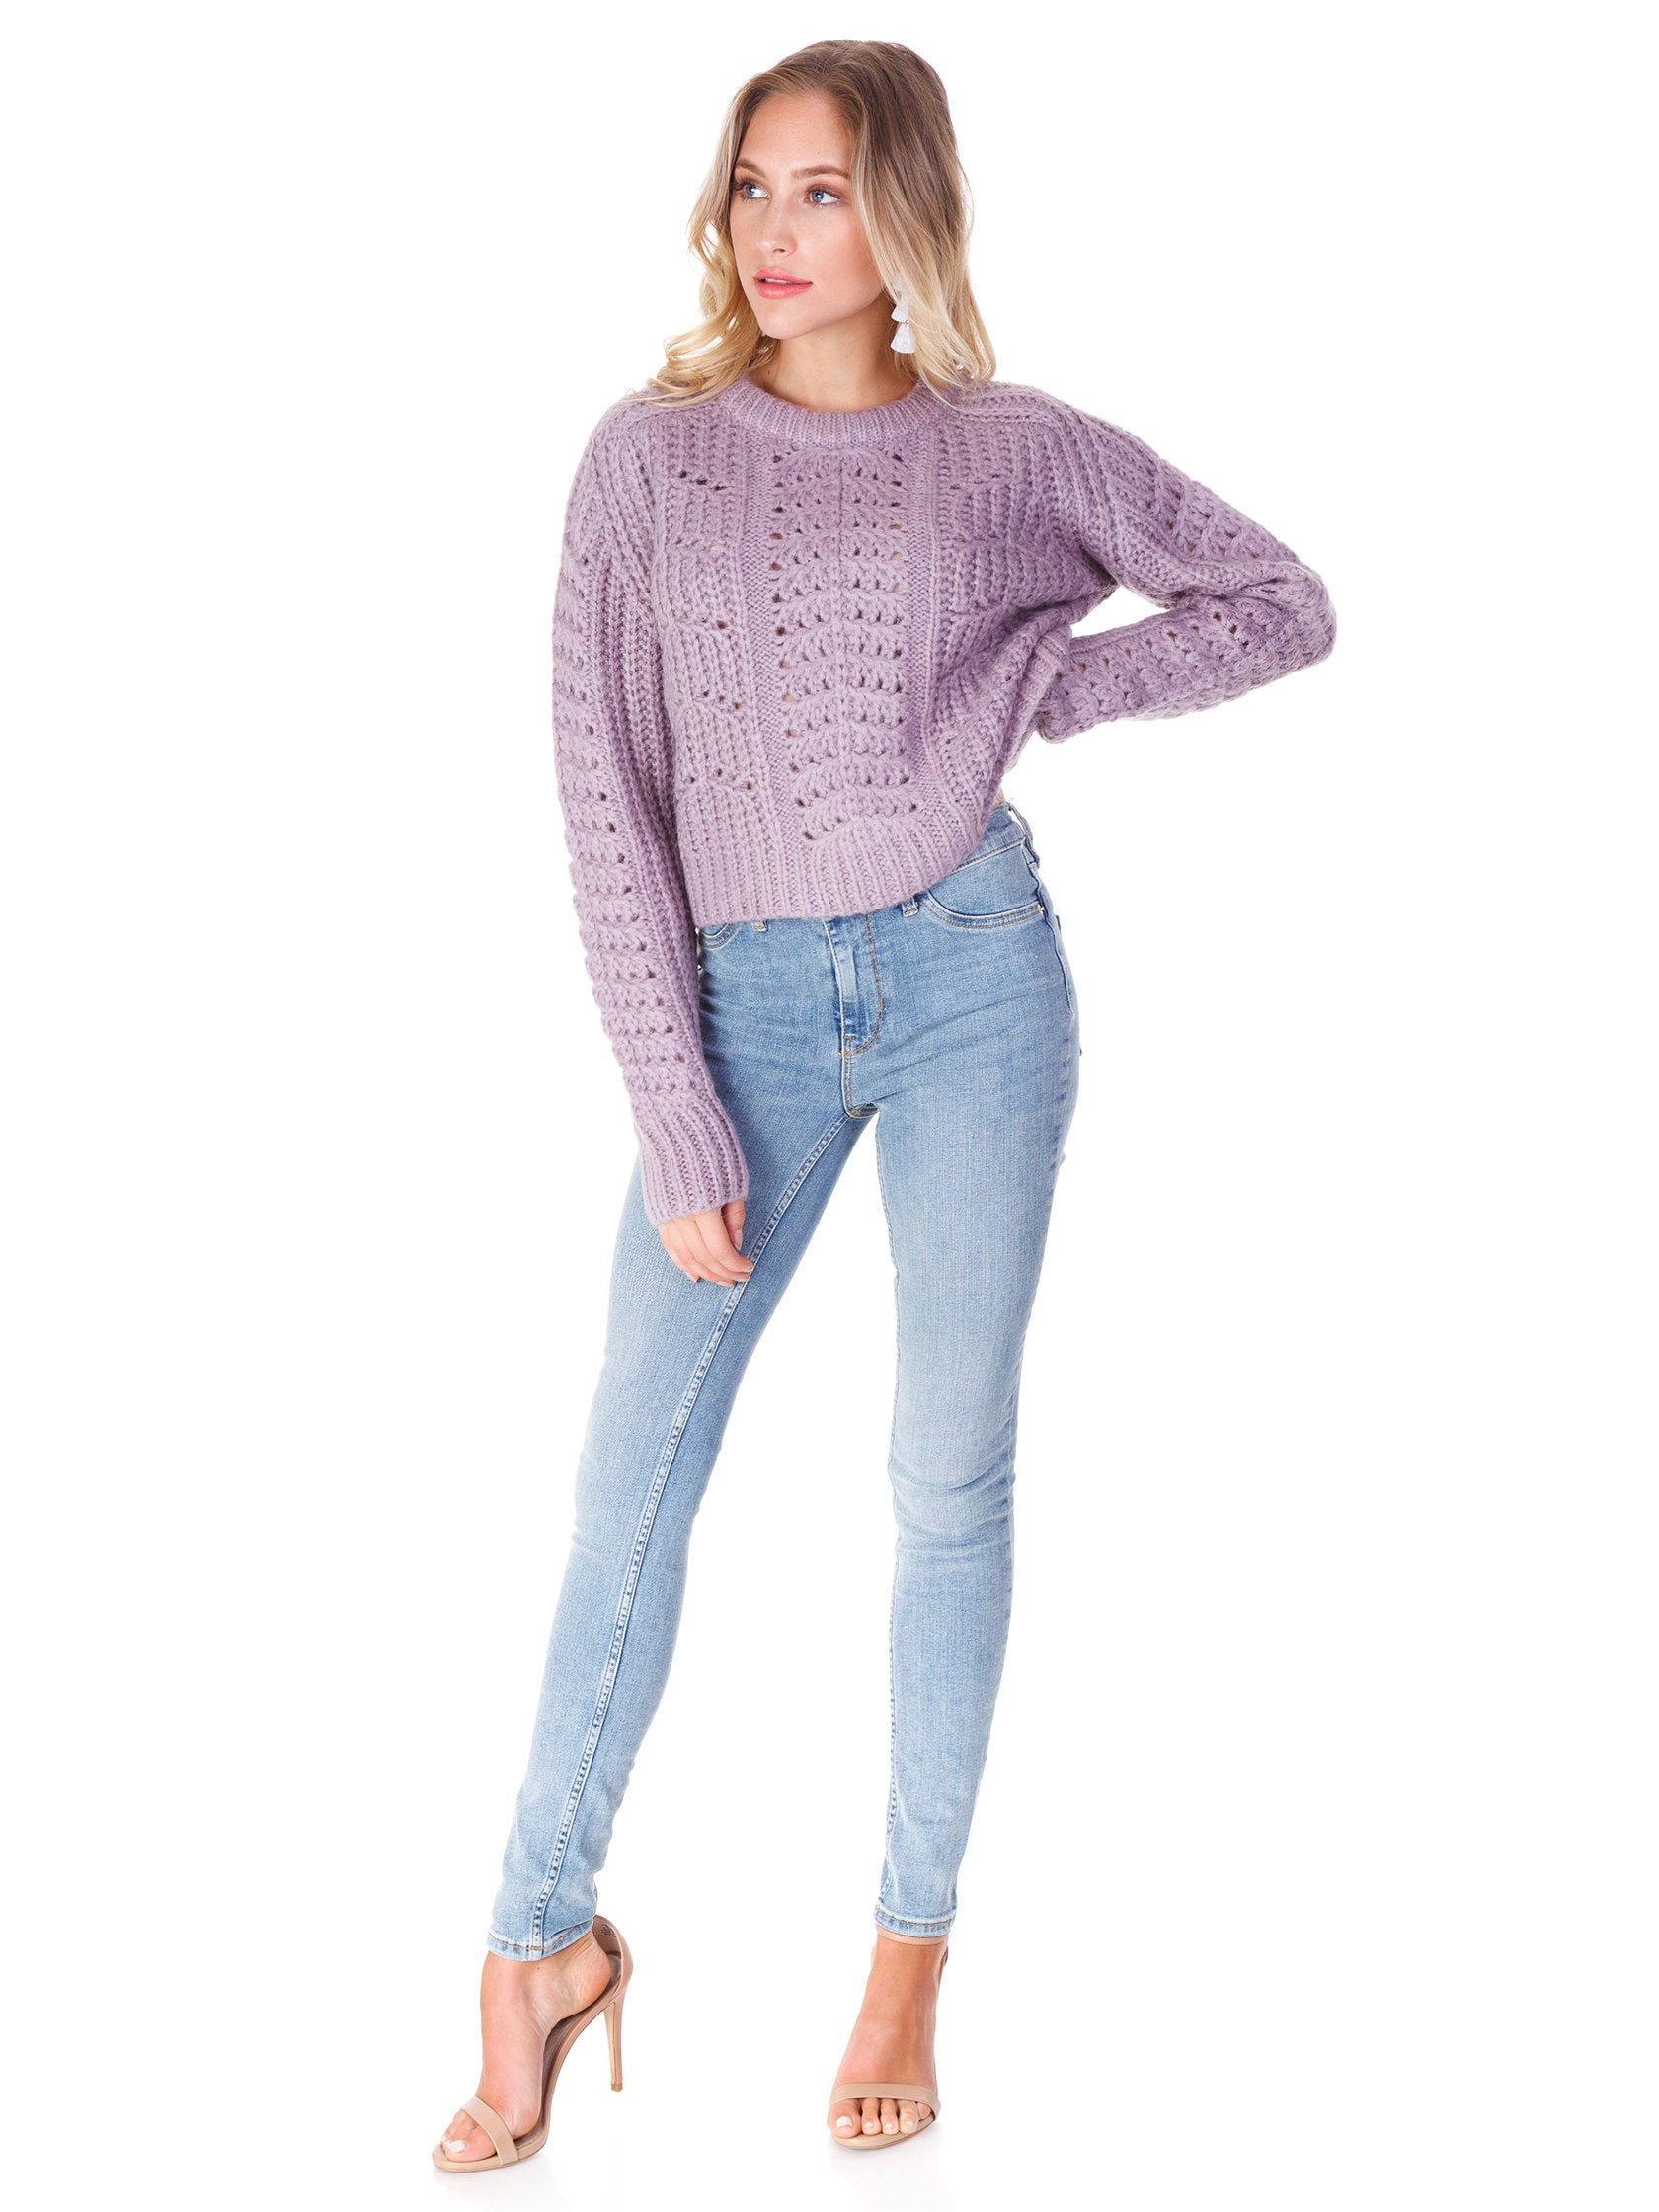 Girl wearing a sweater rental from ASTR called Georgia Sweater